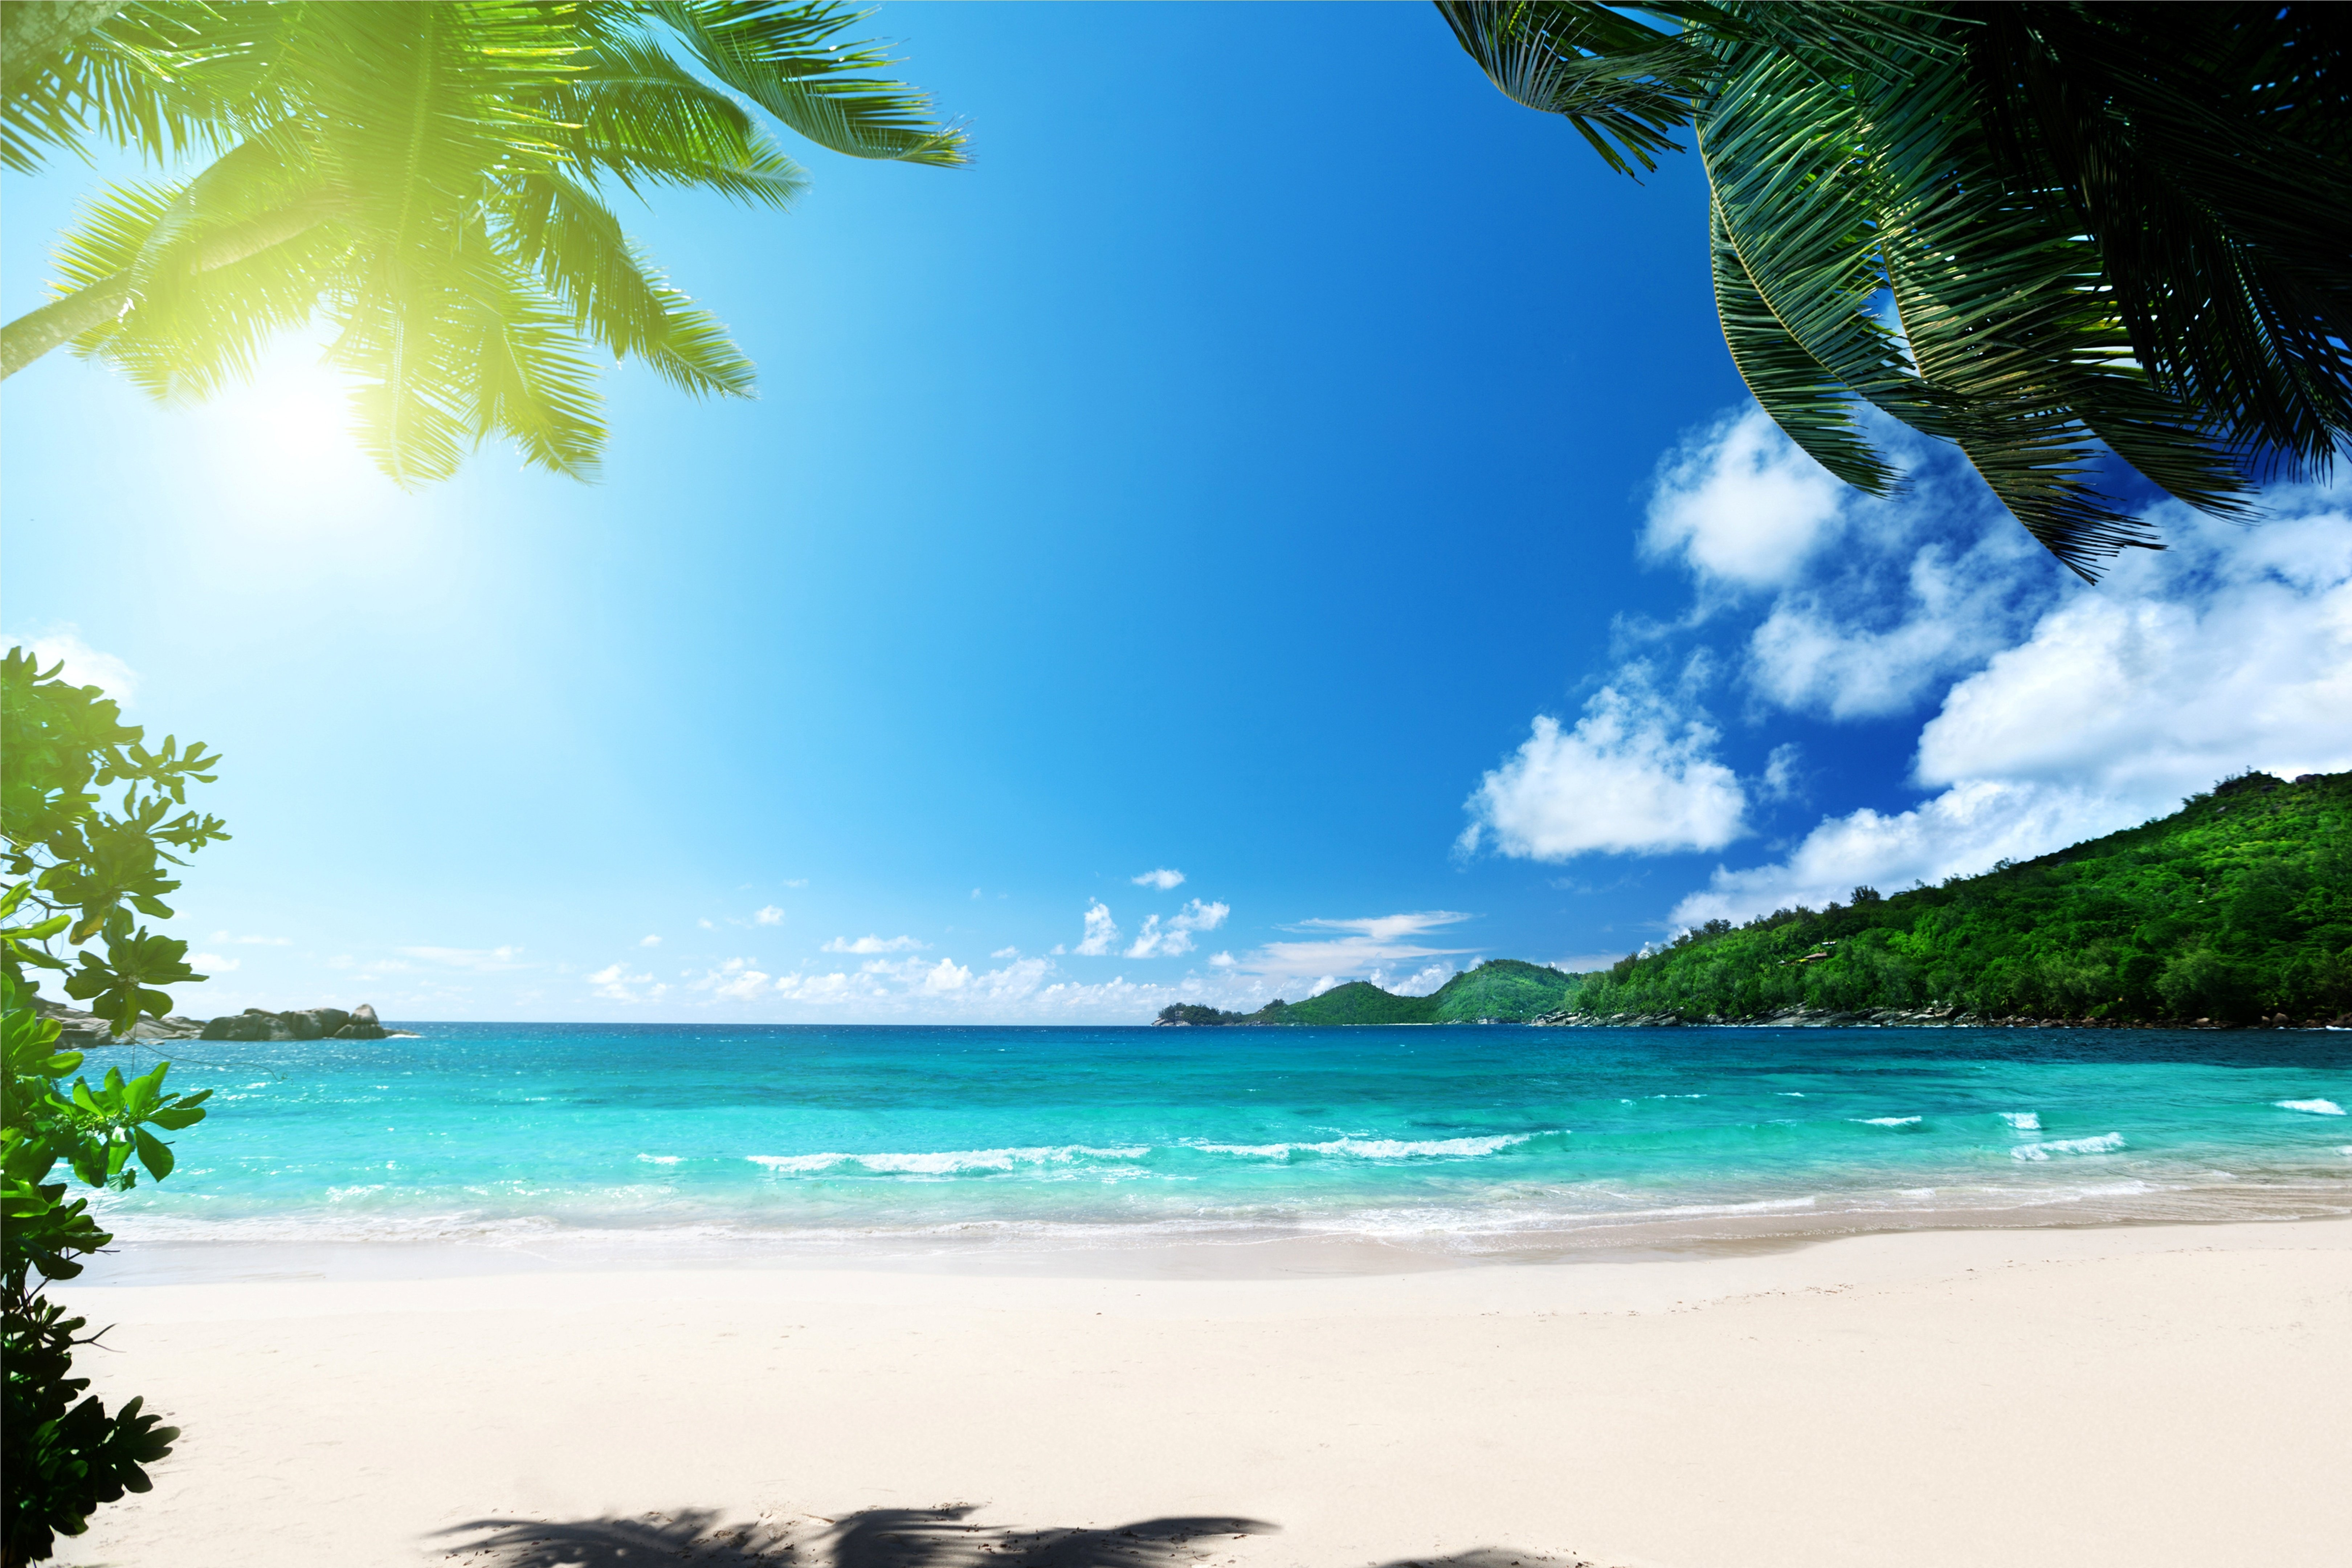 Tropical Beach Wallpapers Pictures Images 6480x4320